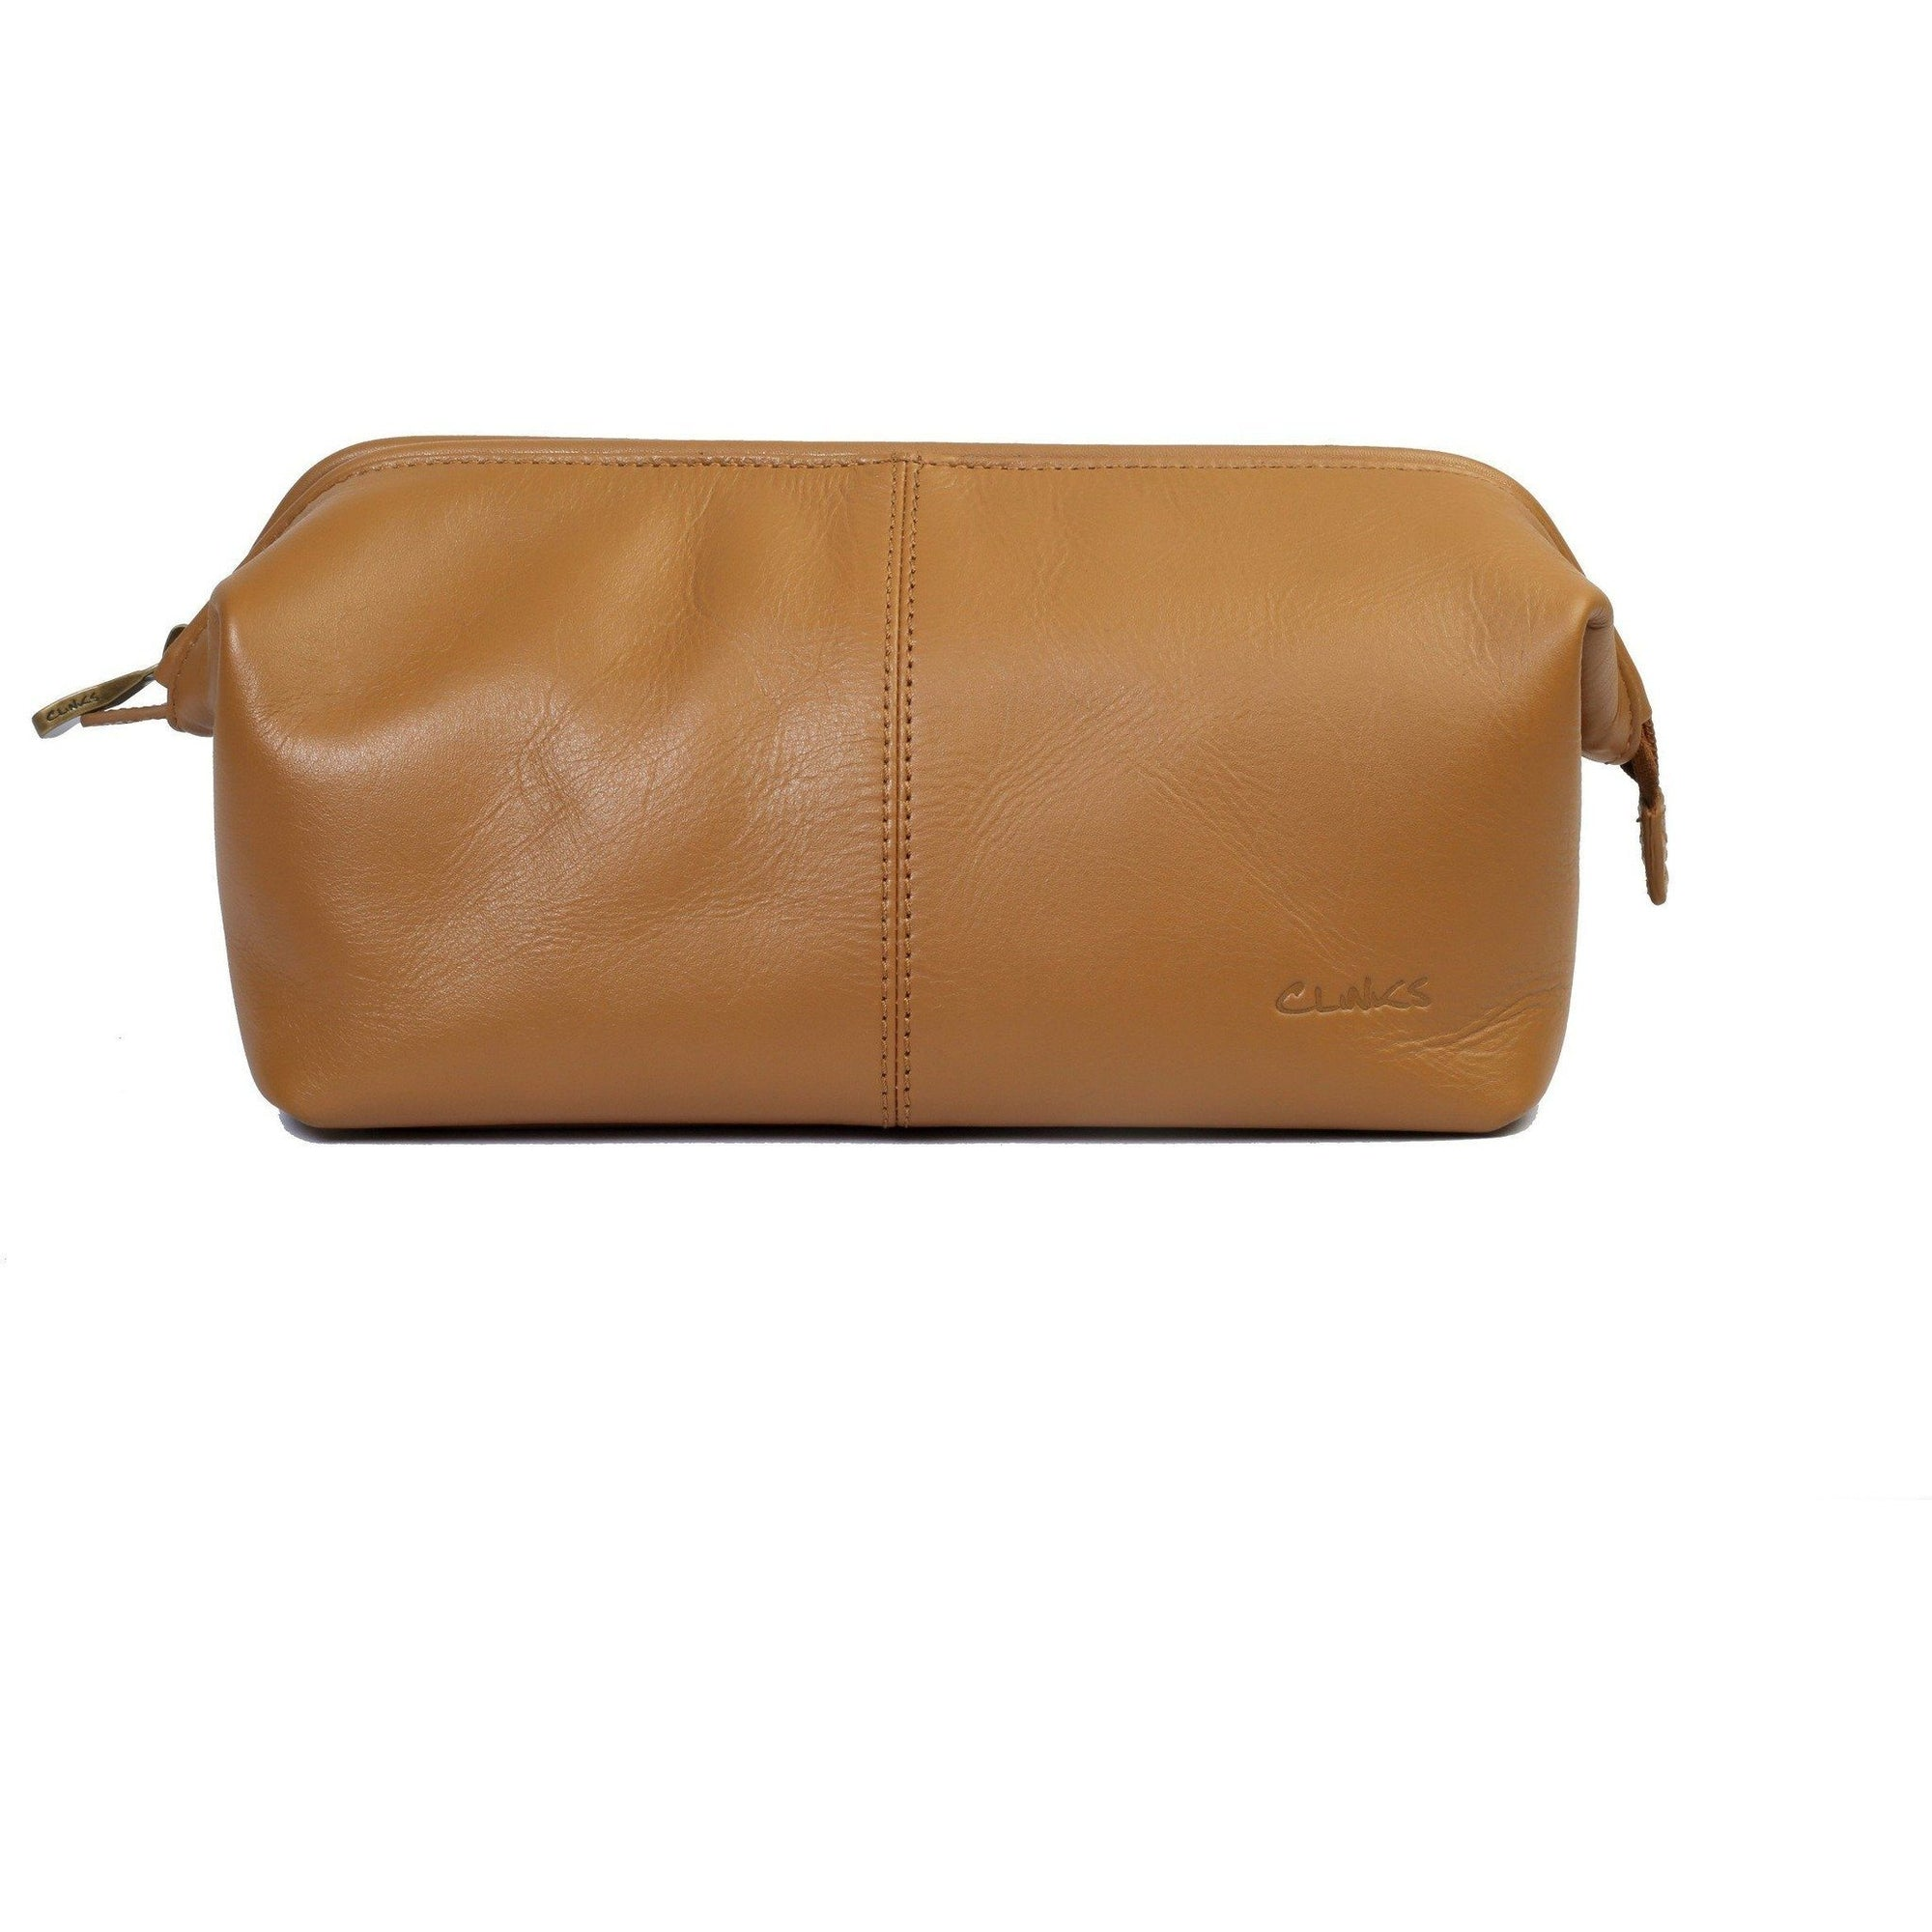 Large Leather Toiletry Dopp Bag in Tan, Leather Accessories, Cuffed.com.au, LB1020, $99.00